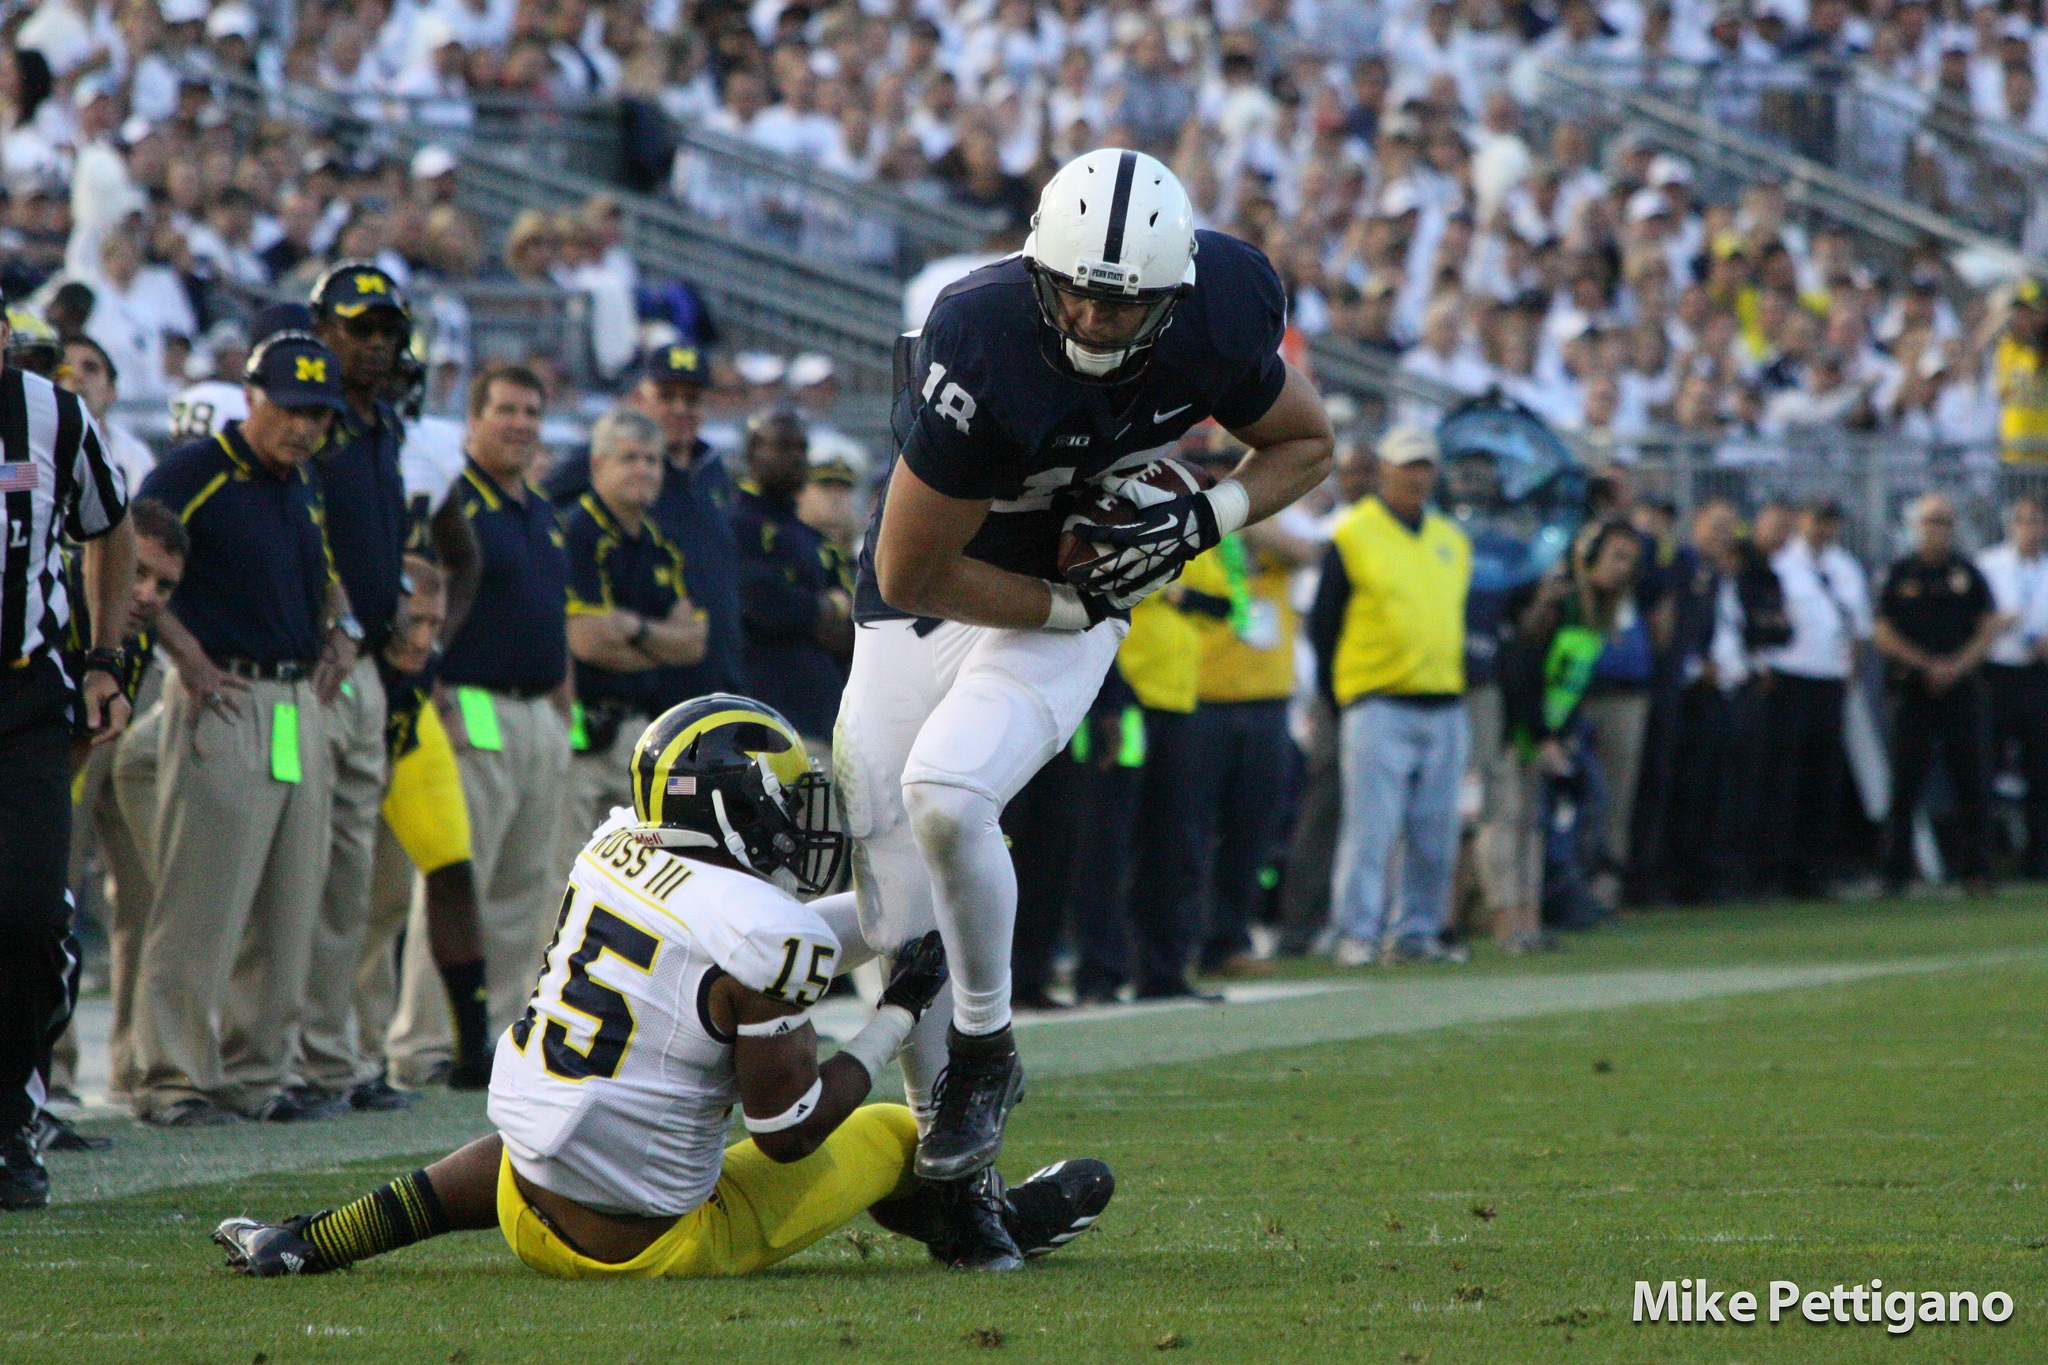 Boiler Room: Jesse James Penn State TE